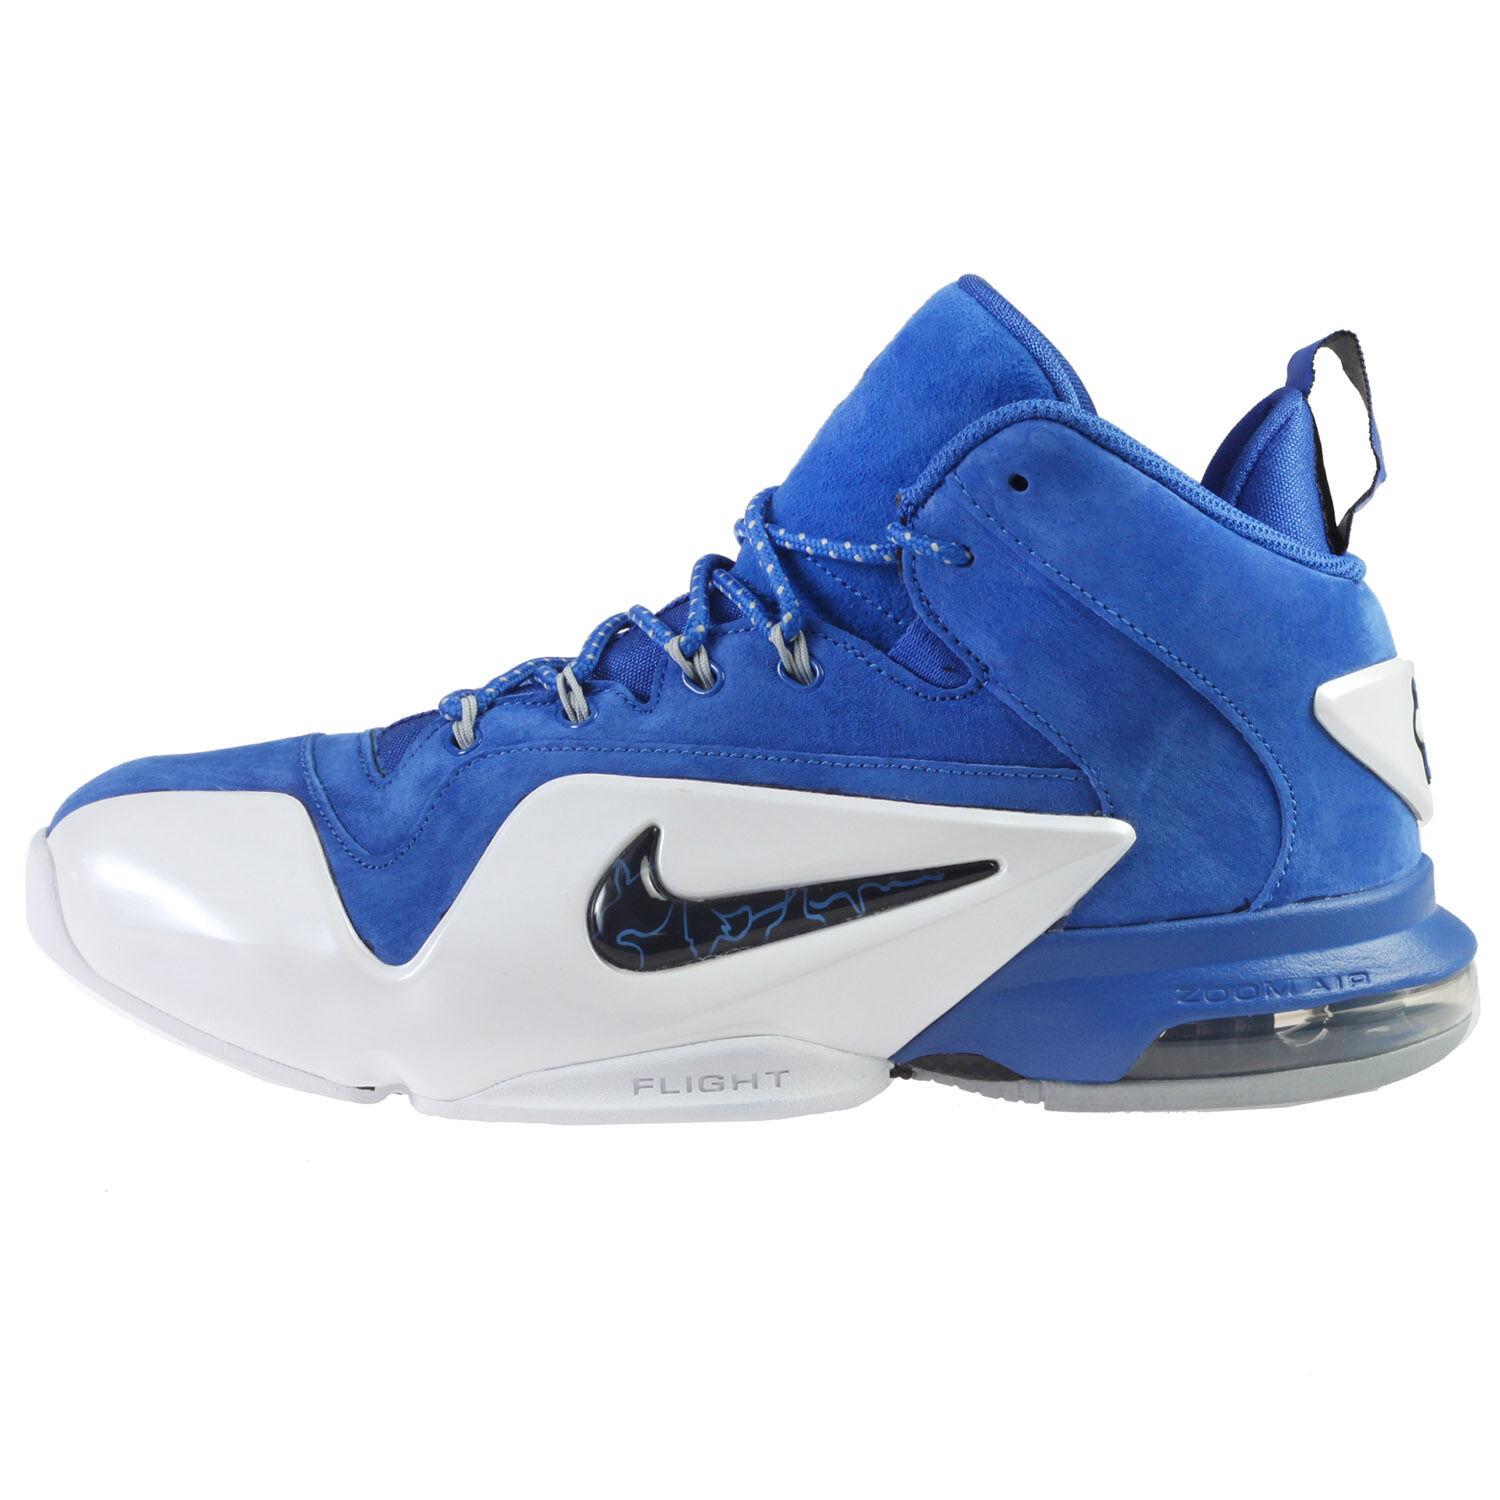 Nike Zoom Penny VI Mens 749629-401 Game Royal Suede Basketball shoes Size 8